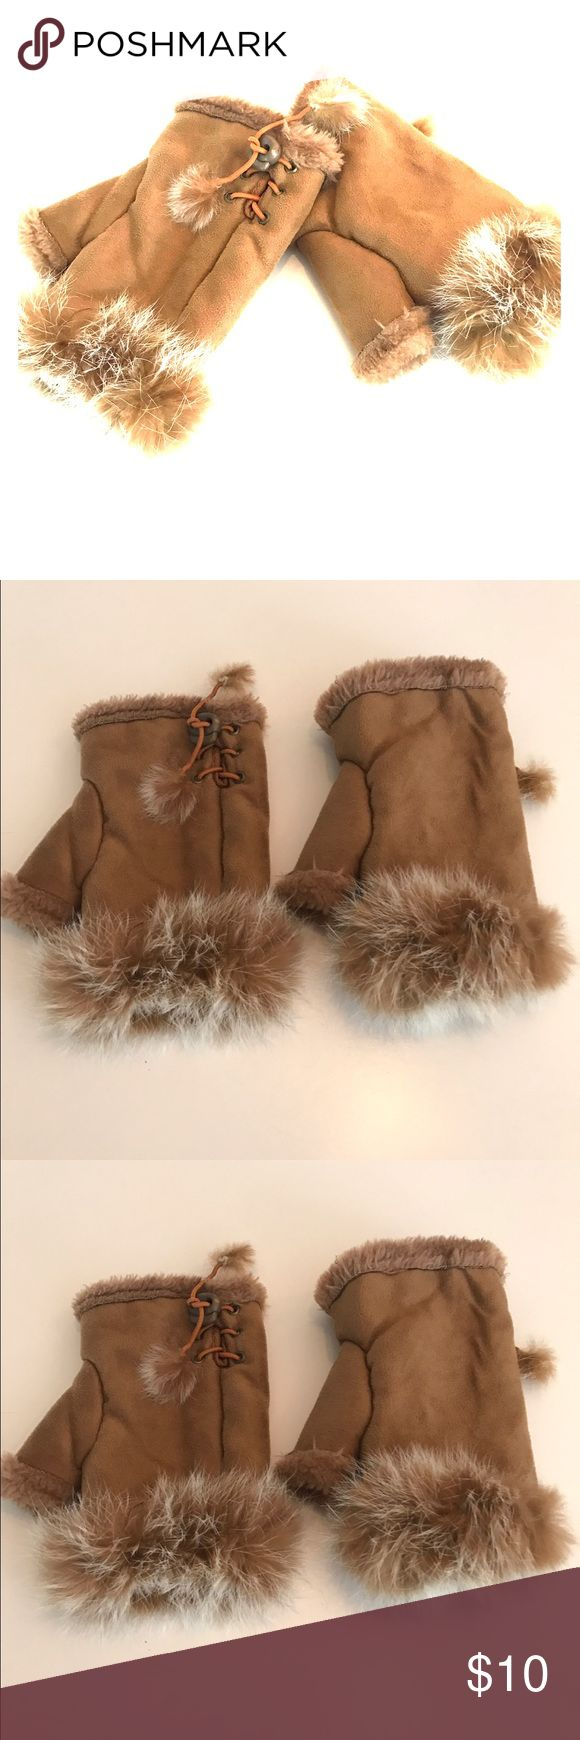 Camel new fingerless suede for gloves Super cute fingerless one size fits all with cute lace that material on the inner part of the club with further details Macy's Accessories Gloves & Mittens